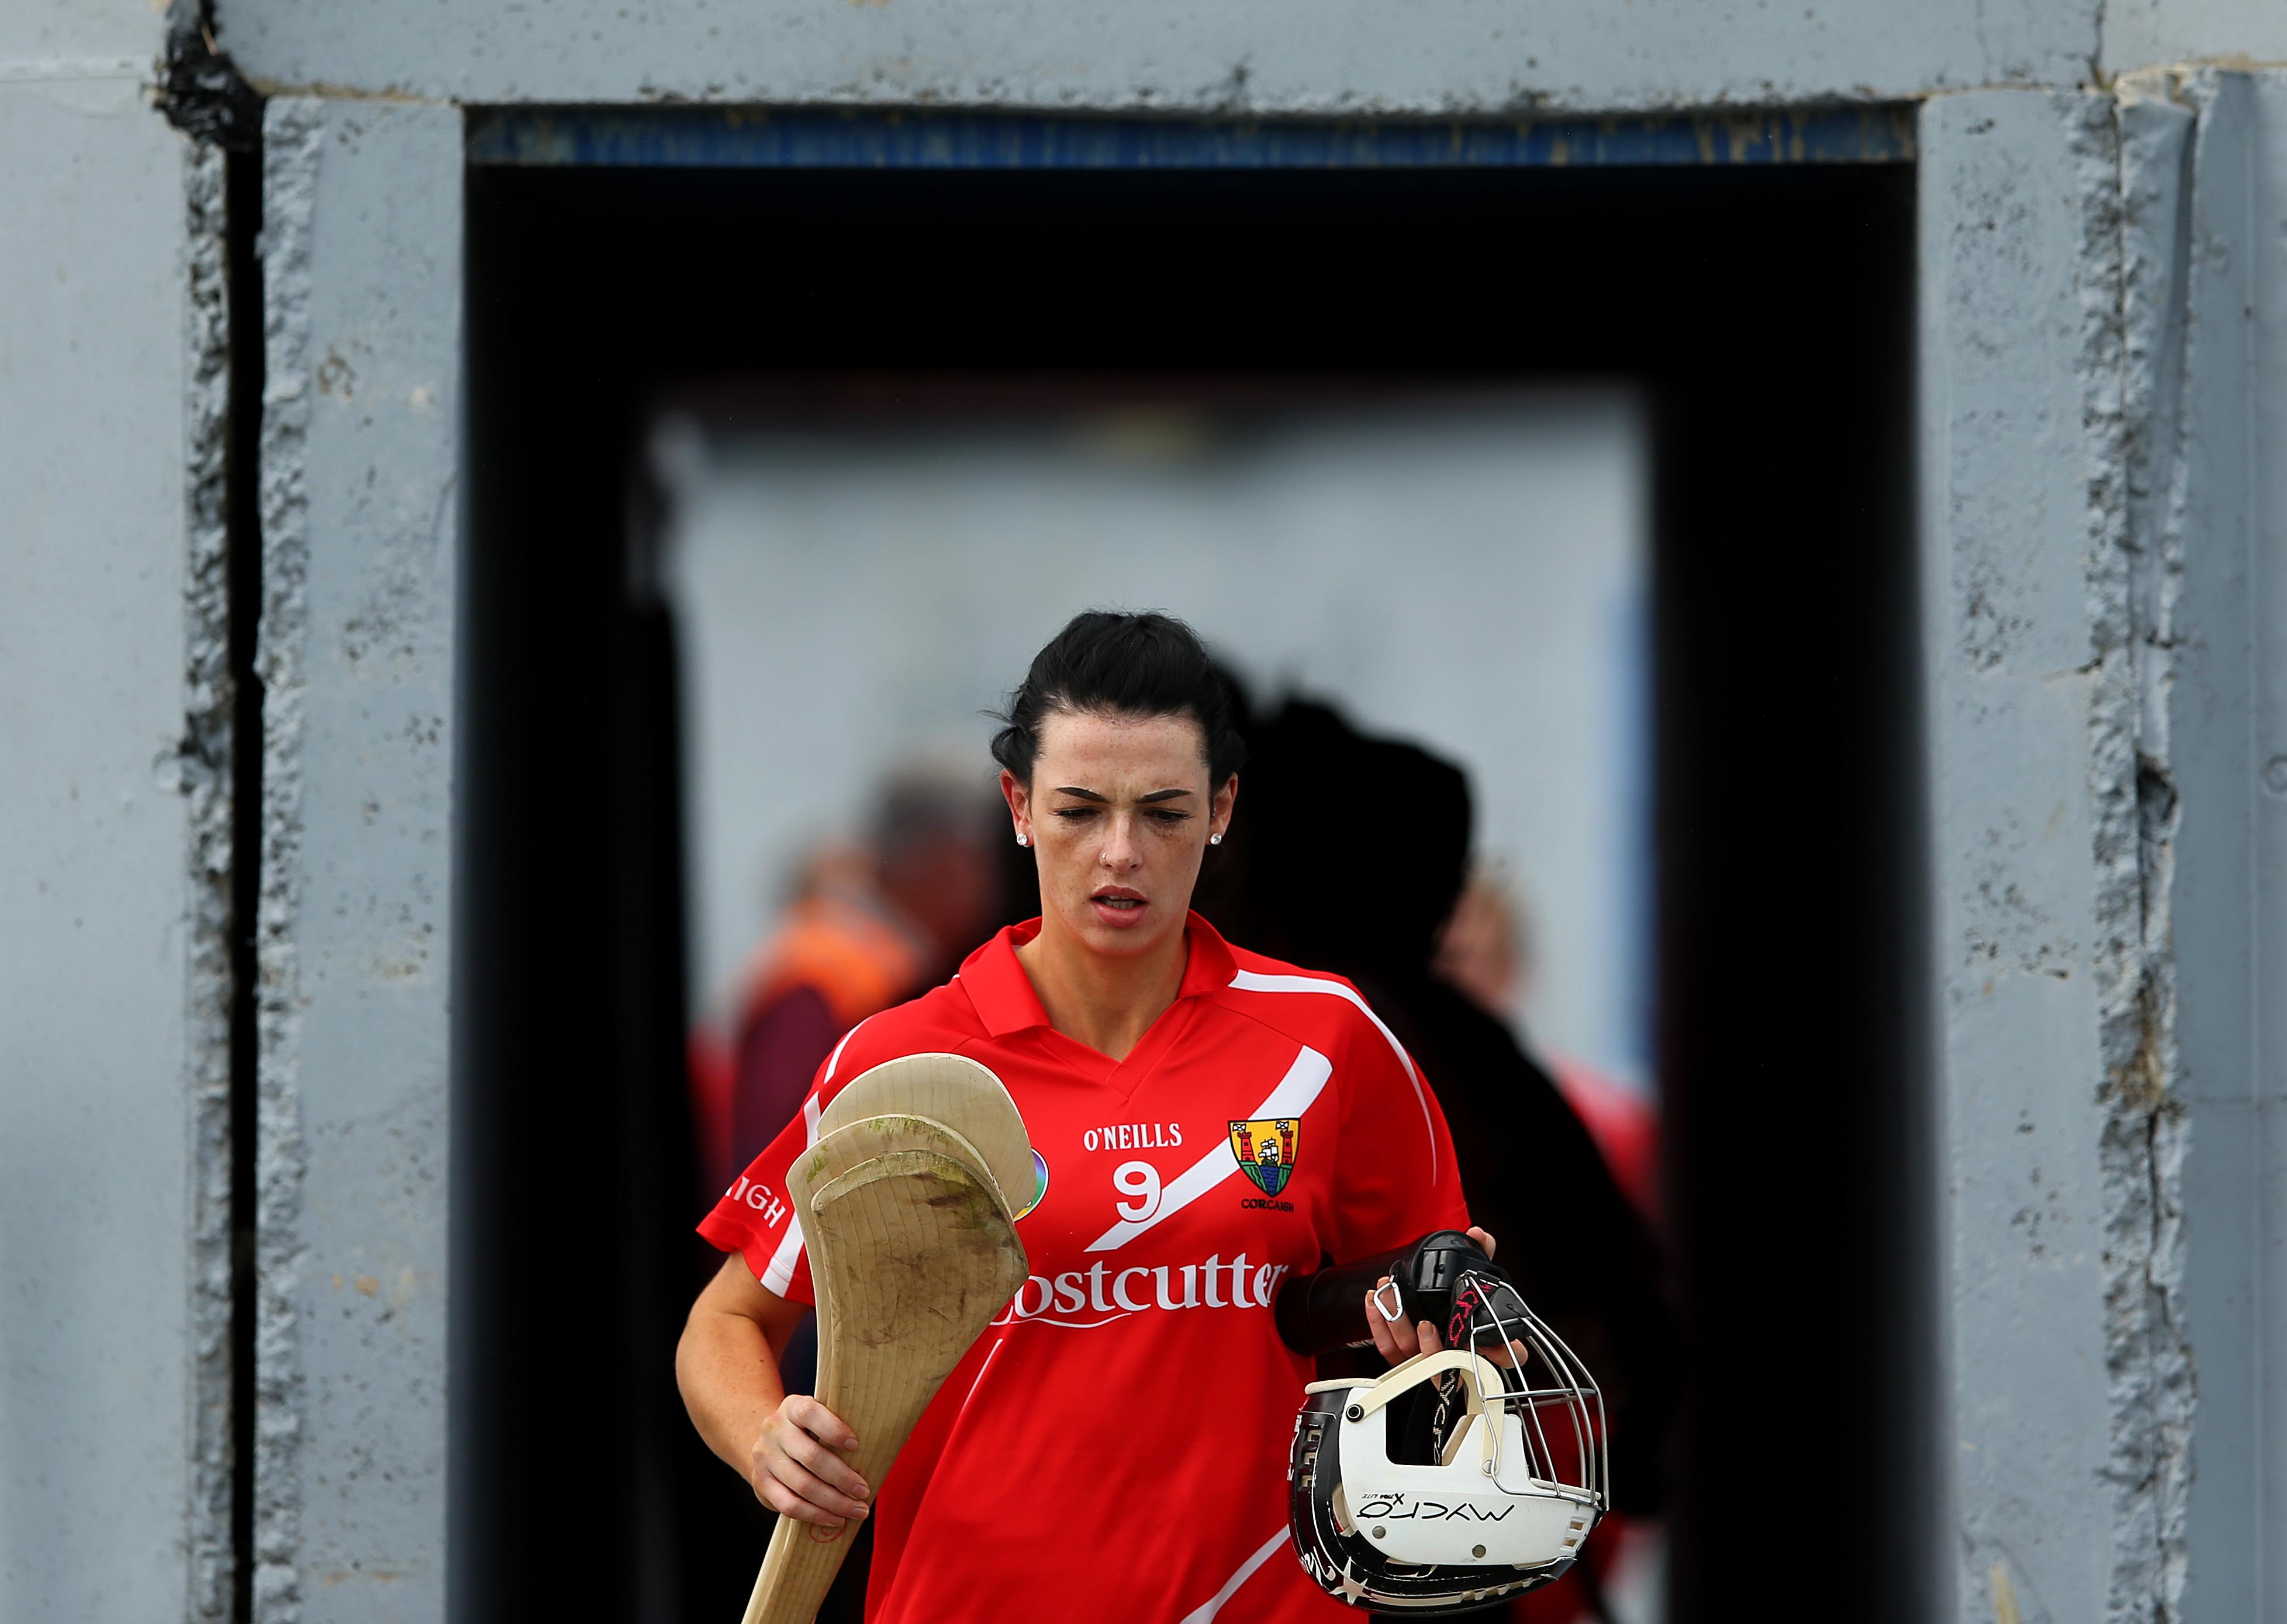 REPRO FREE***PRESS RELEASE NO REPRODUCTION FEE*** Liberty Insurance Senior Camogie Championship Semi-Final, Walsh Park, Waterford 16/8/2015 Kilkenny vs Cork Cork's Ashling Thompson leads out her team Mandatory Credit ©INPHO/Ryan Byrne